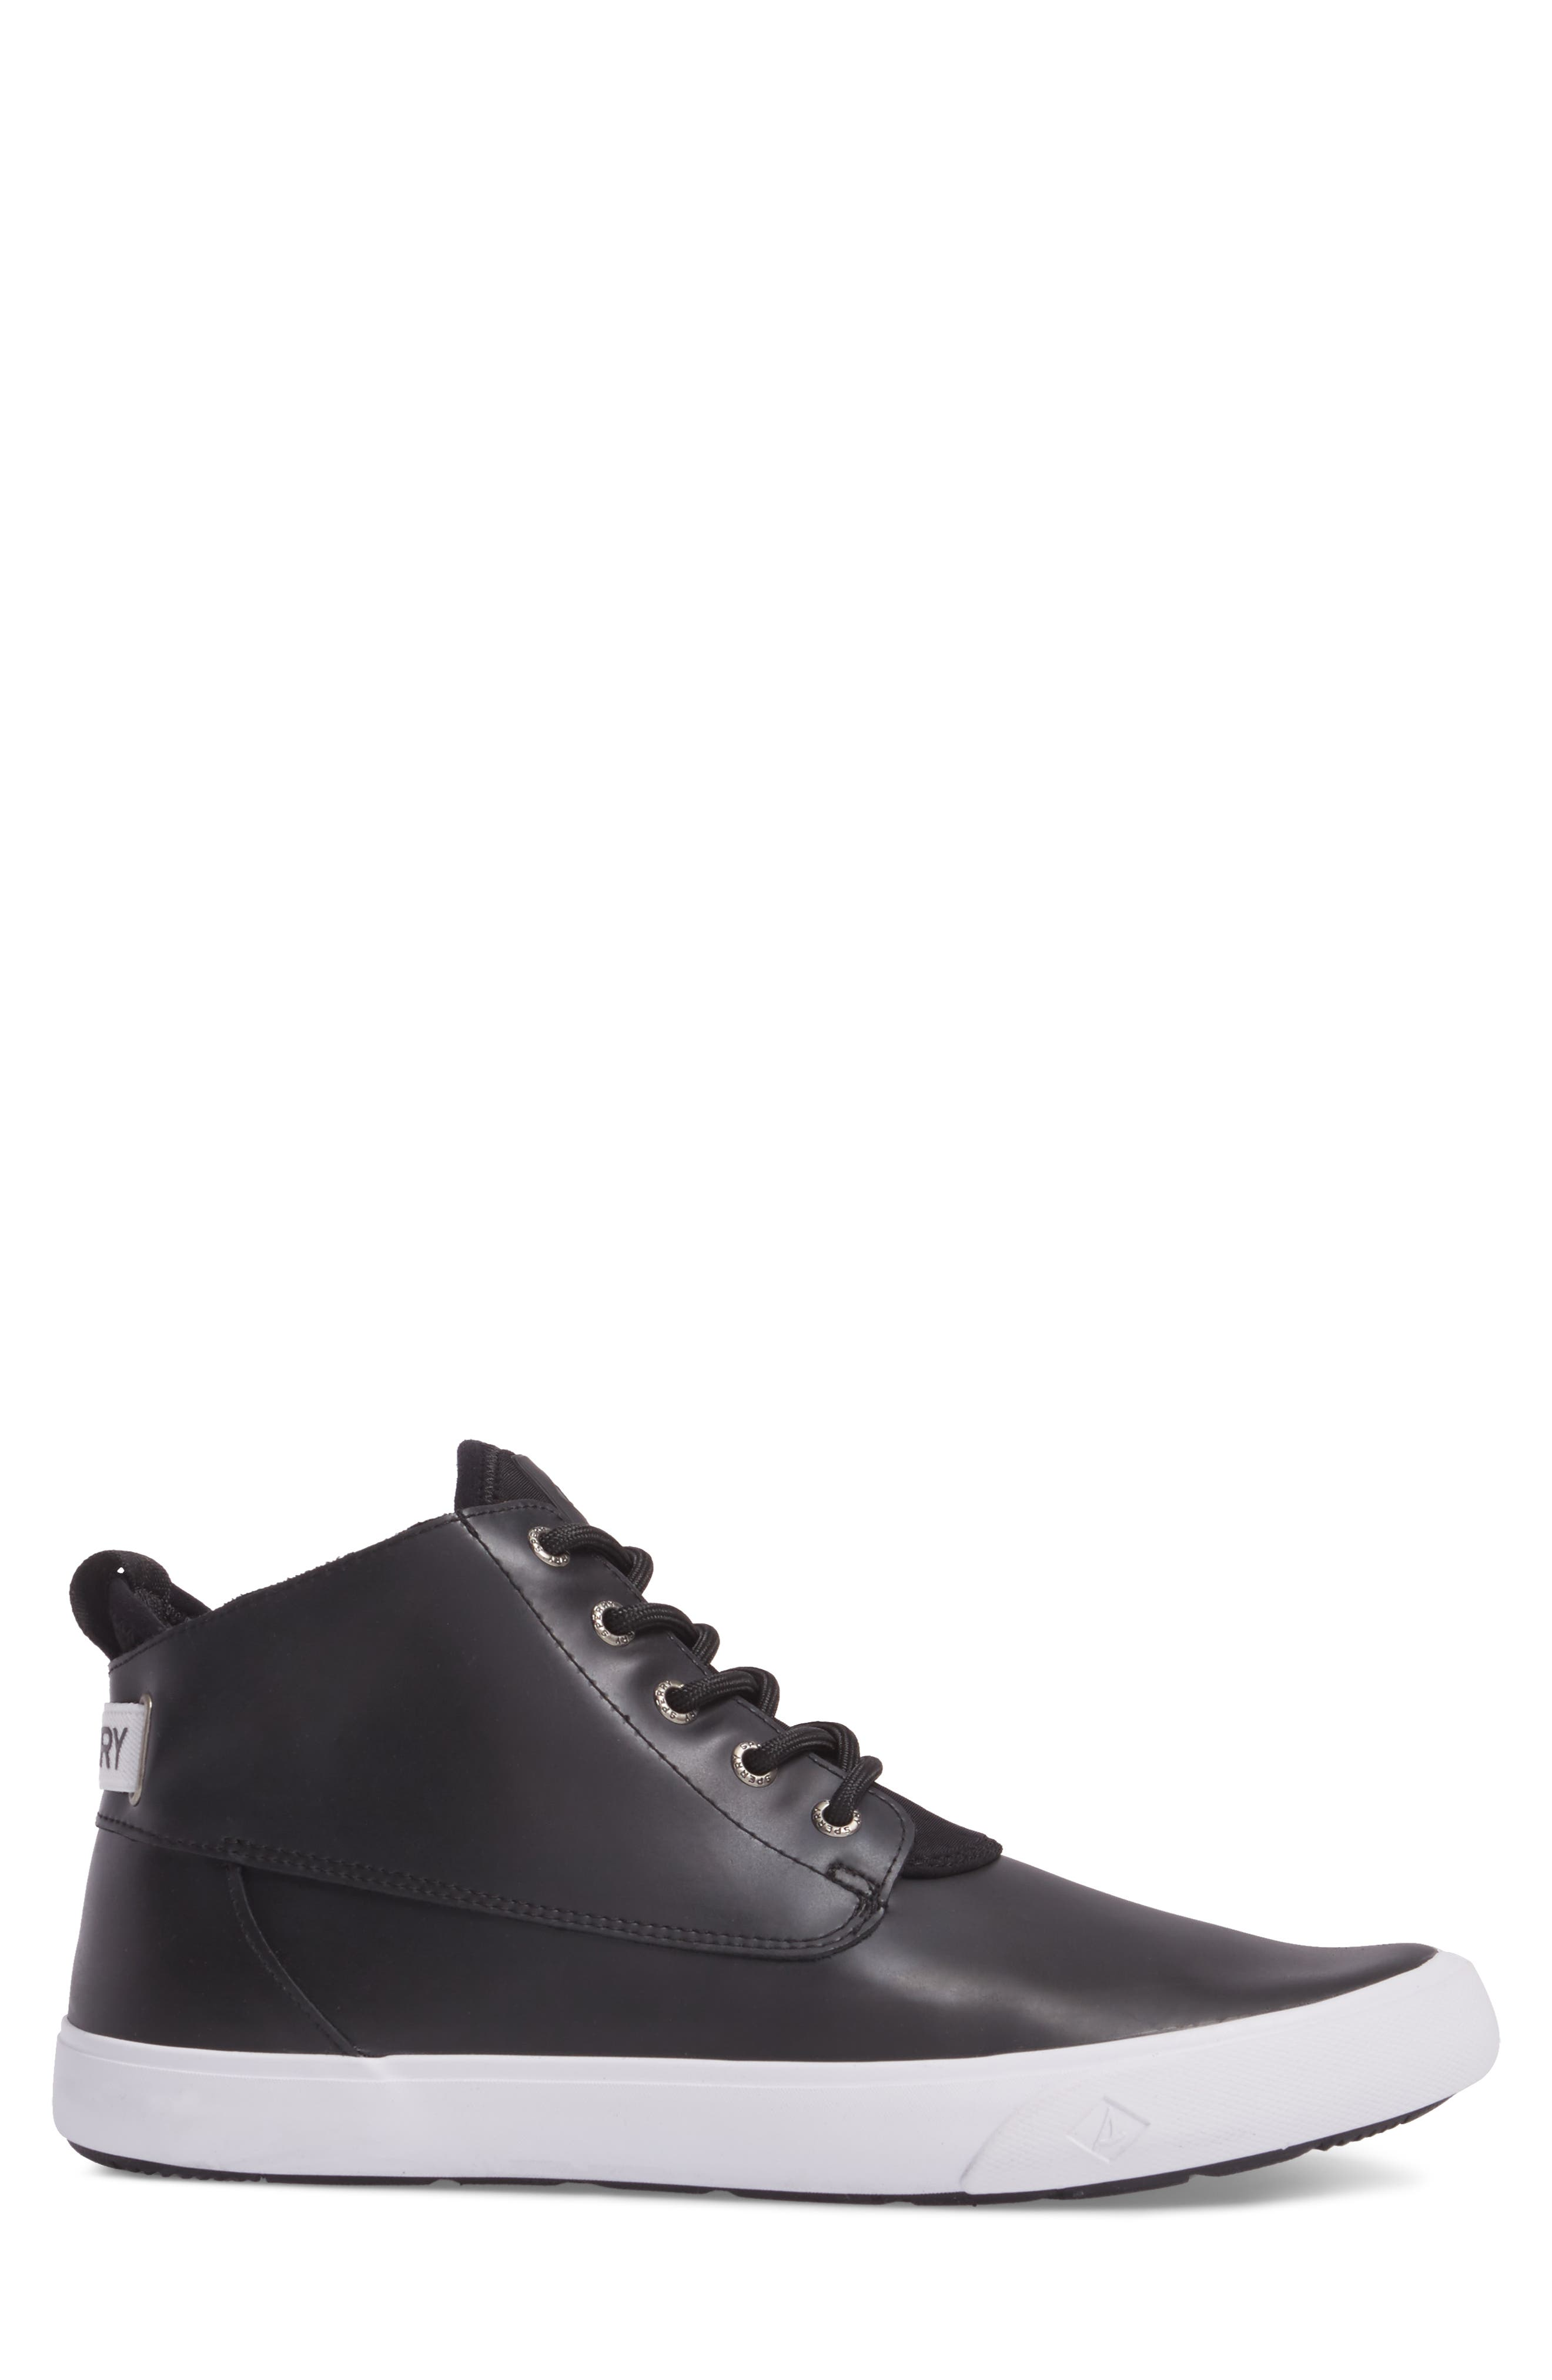 Cutwater Chukka Boot,                             Alternate thumbnail 3, color,                             Black Leather